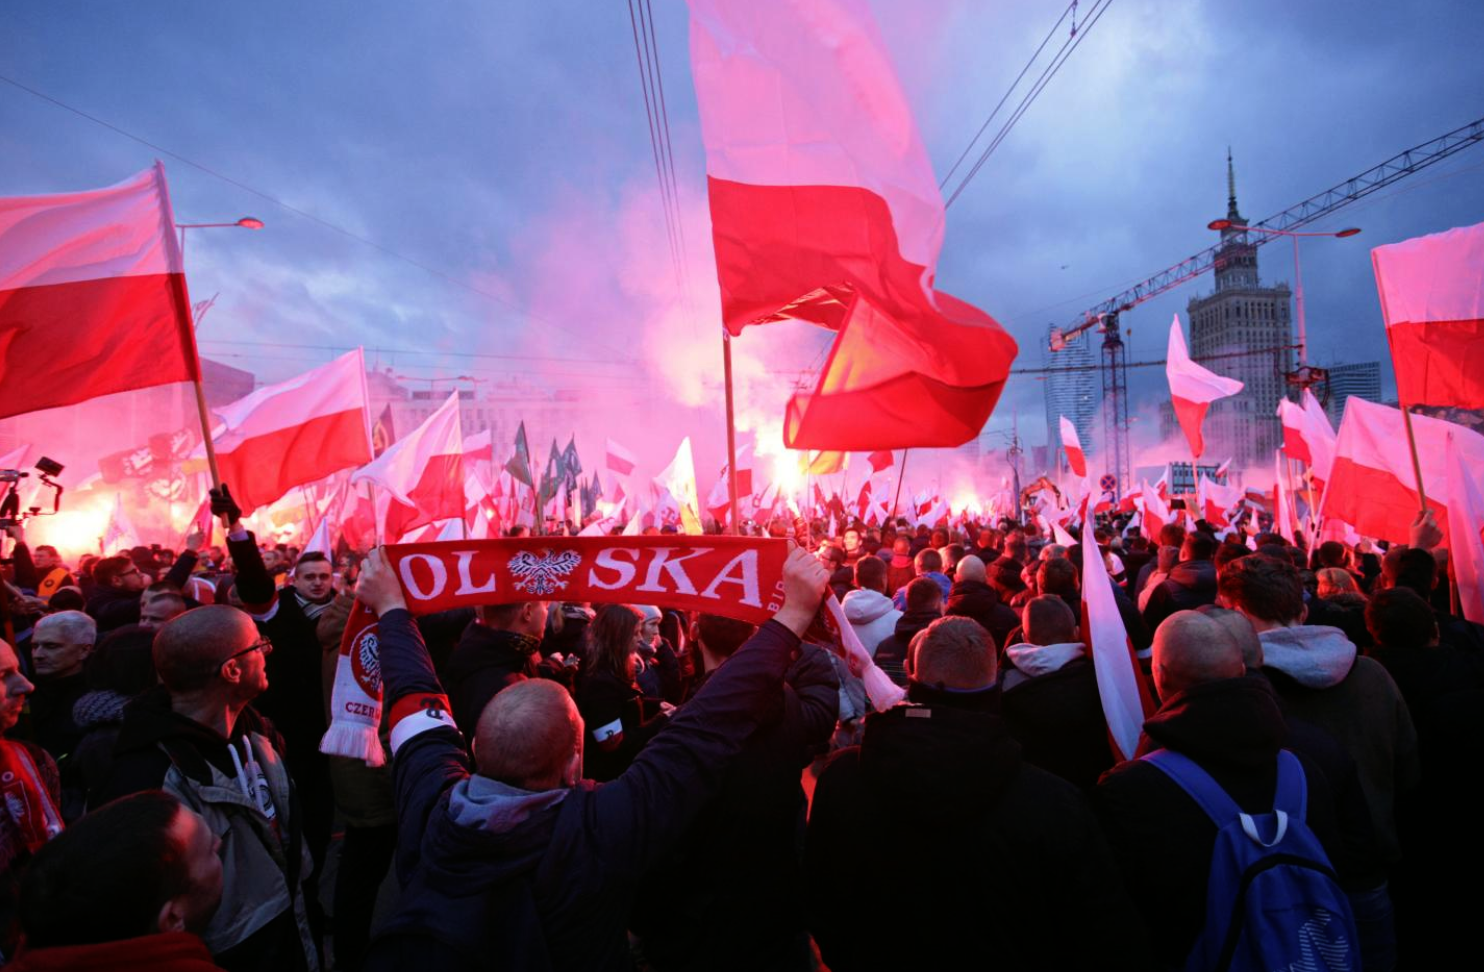 Poland Nationalist Rally with Neo-Nazi Slogans Calls for 'Islamic Holocaust' Draws Biggest Crowd Ever